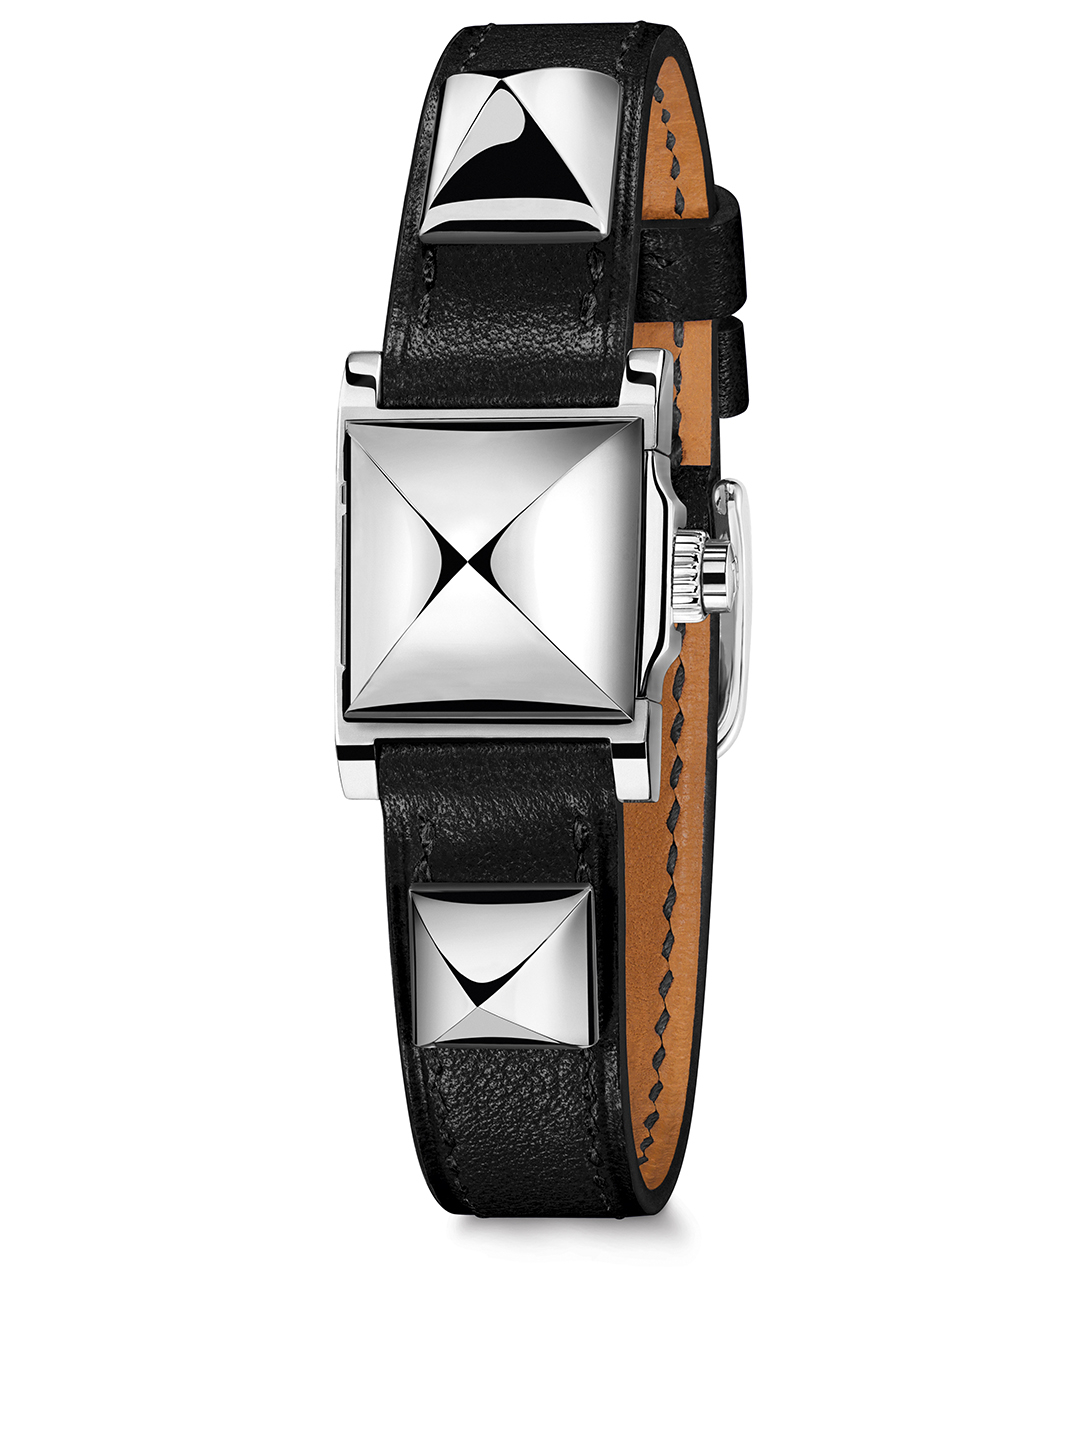 HERMÈS Very Small Medor Stainless Steel Leather Strap Watch Women's Silver